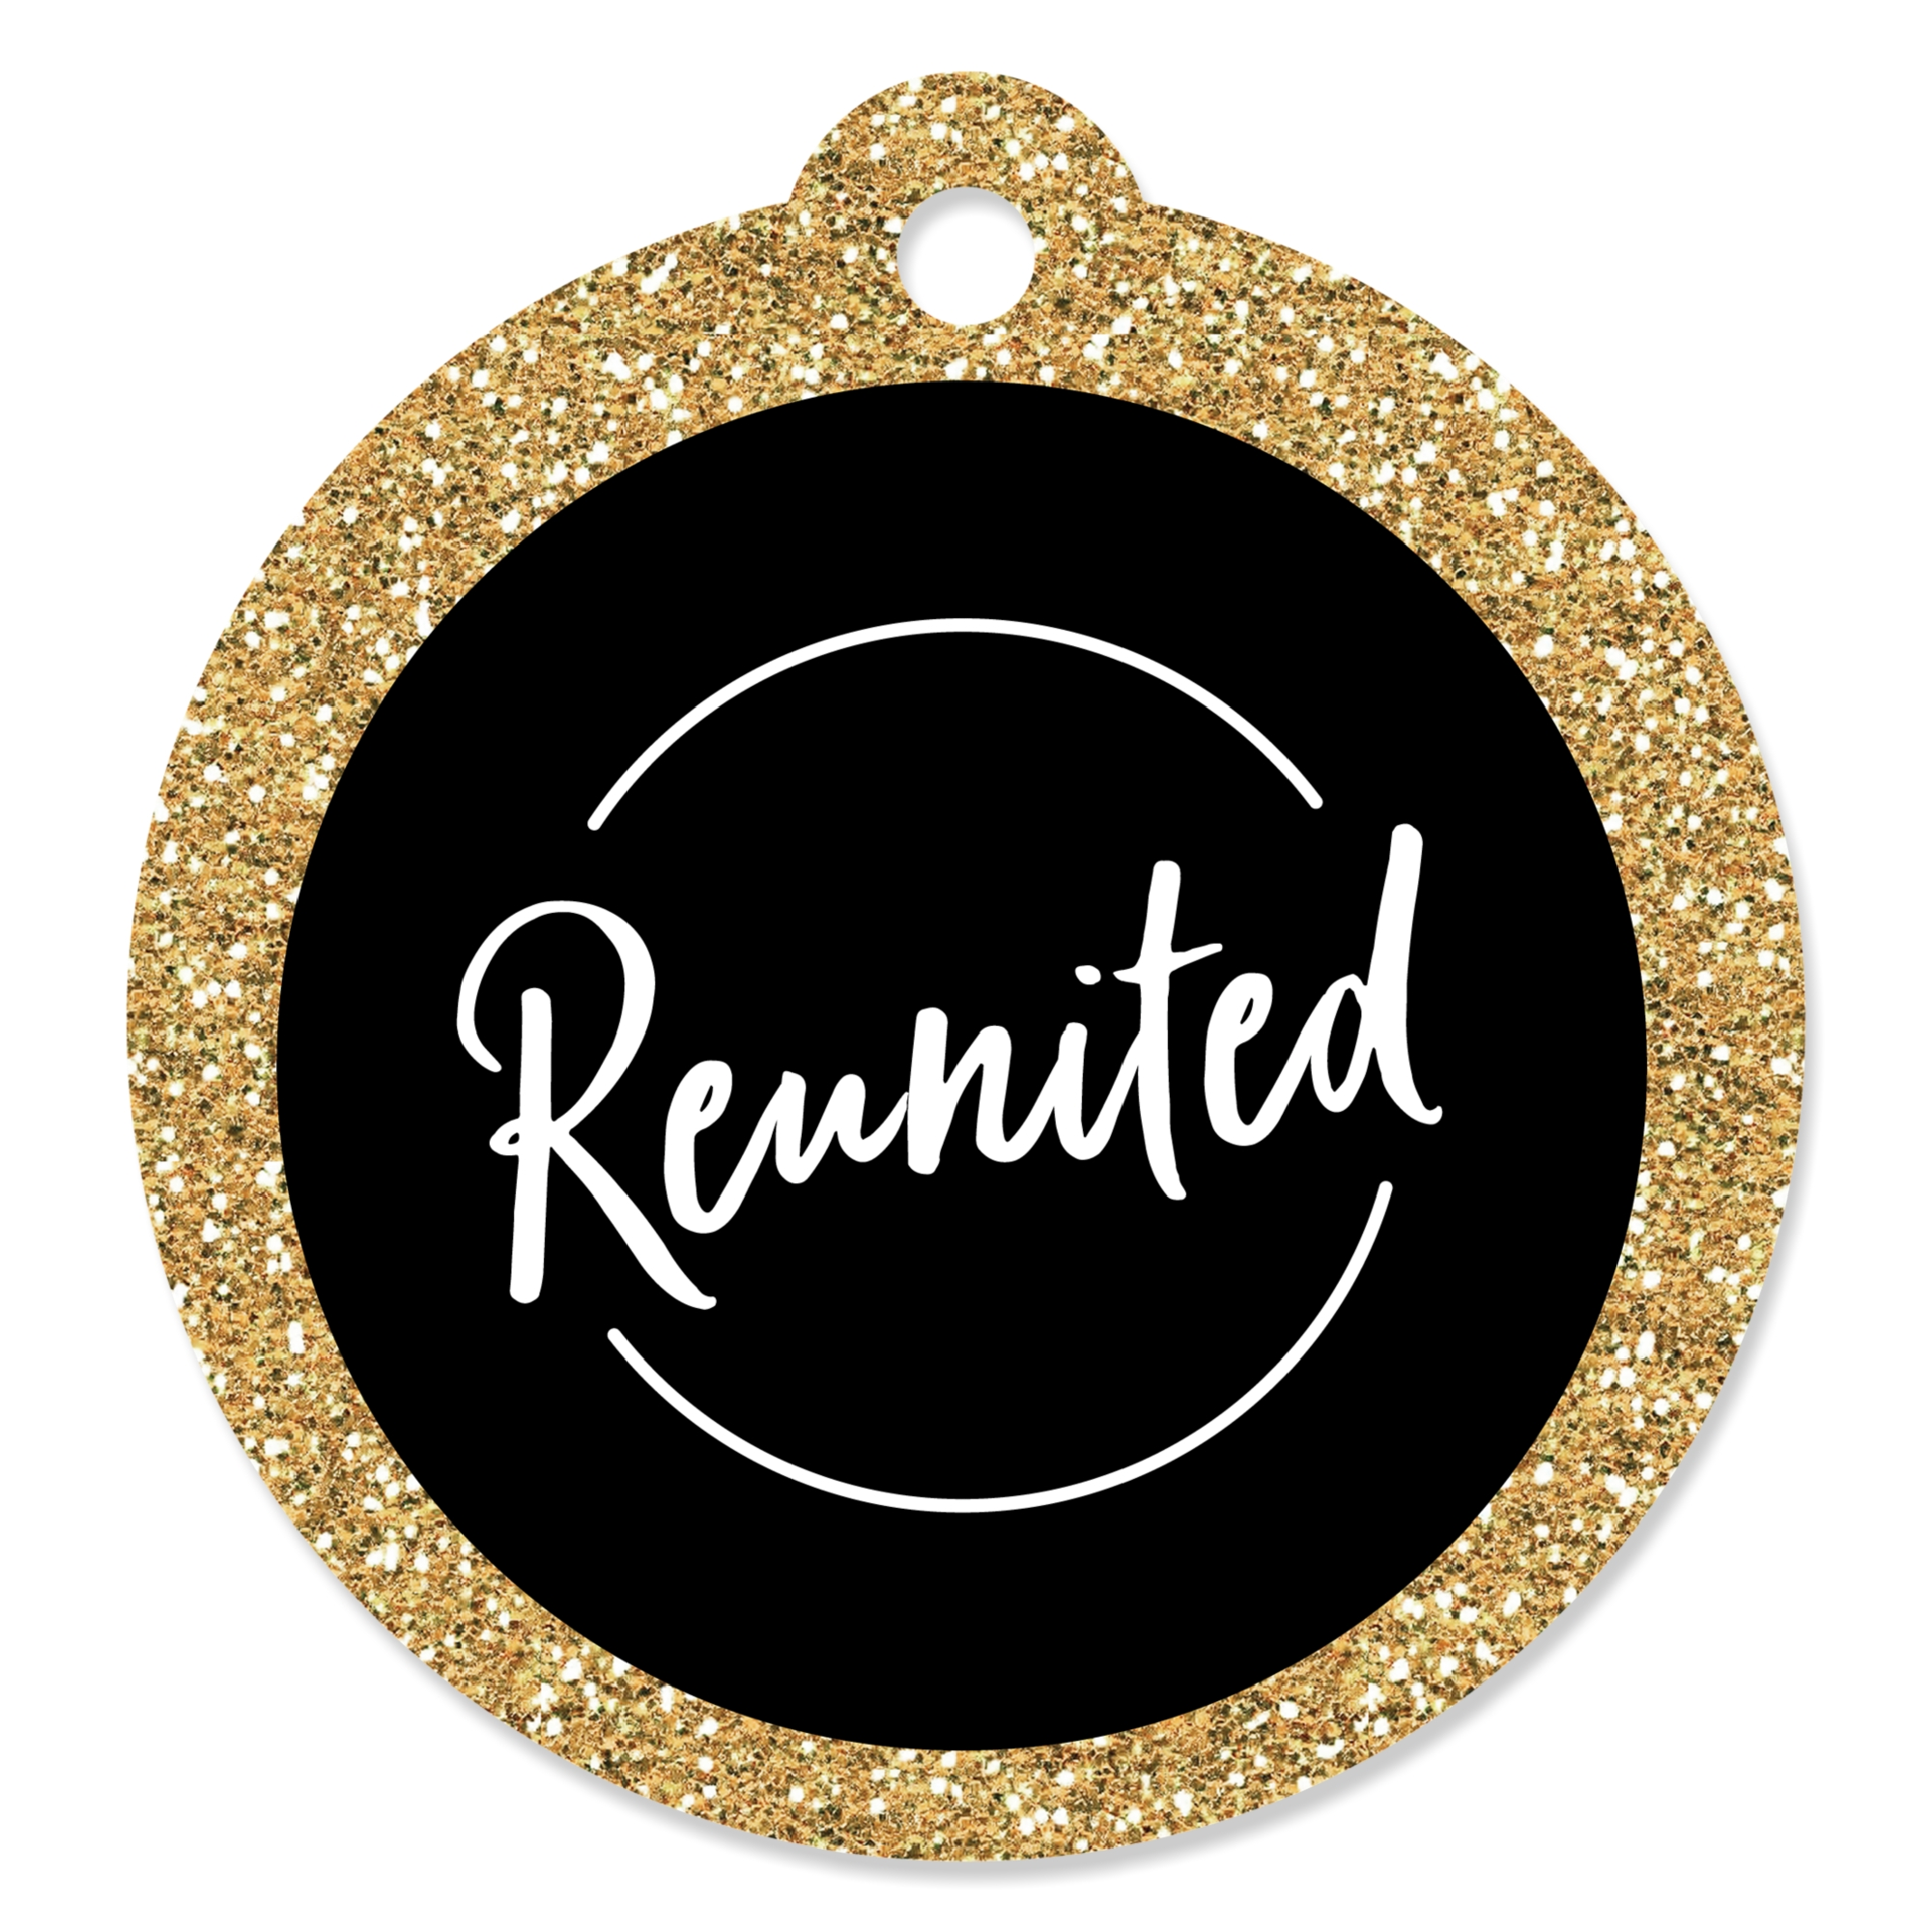 Reunited - School Class Reunion Party Favor Gift Tags (Set of 20)